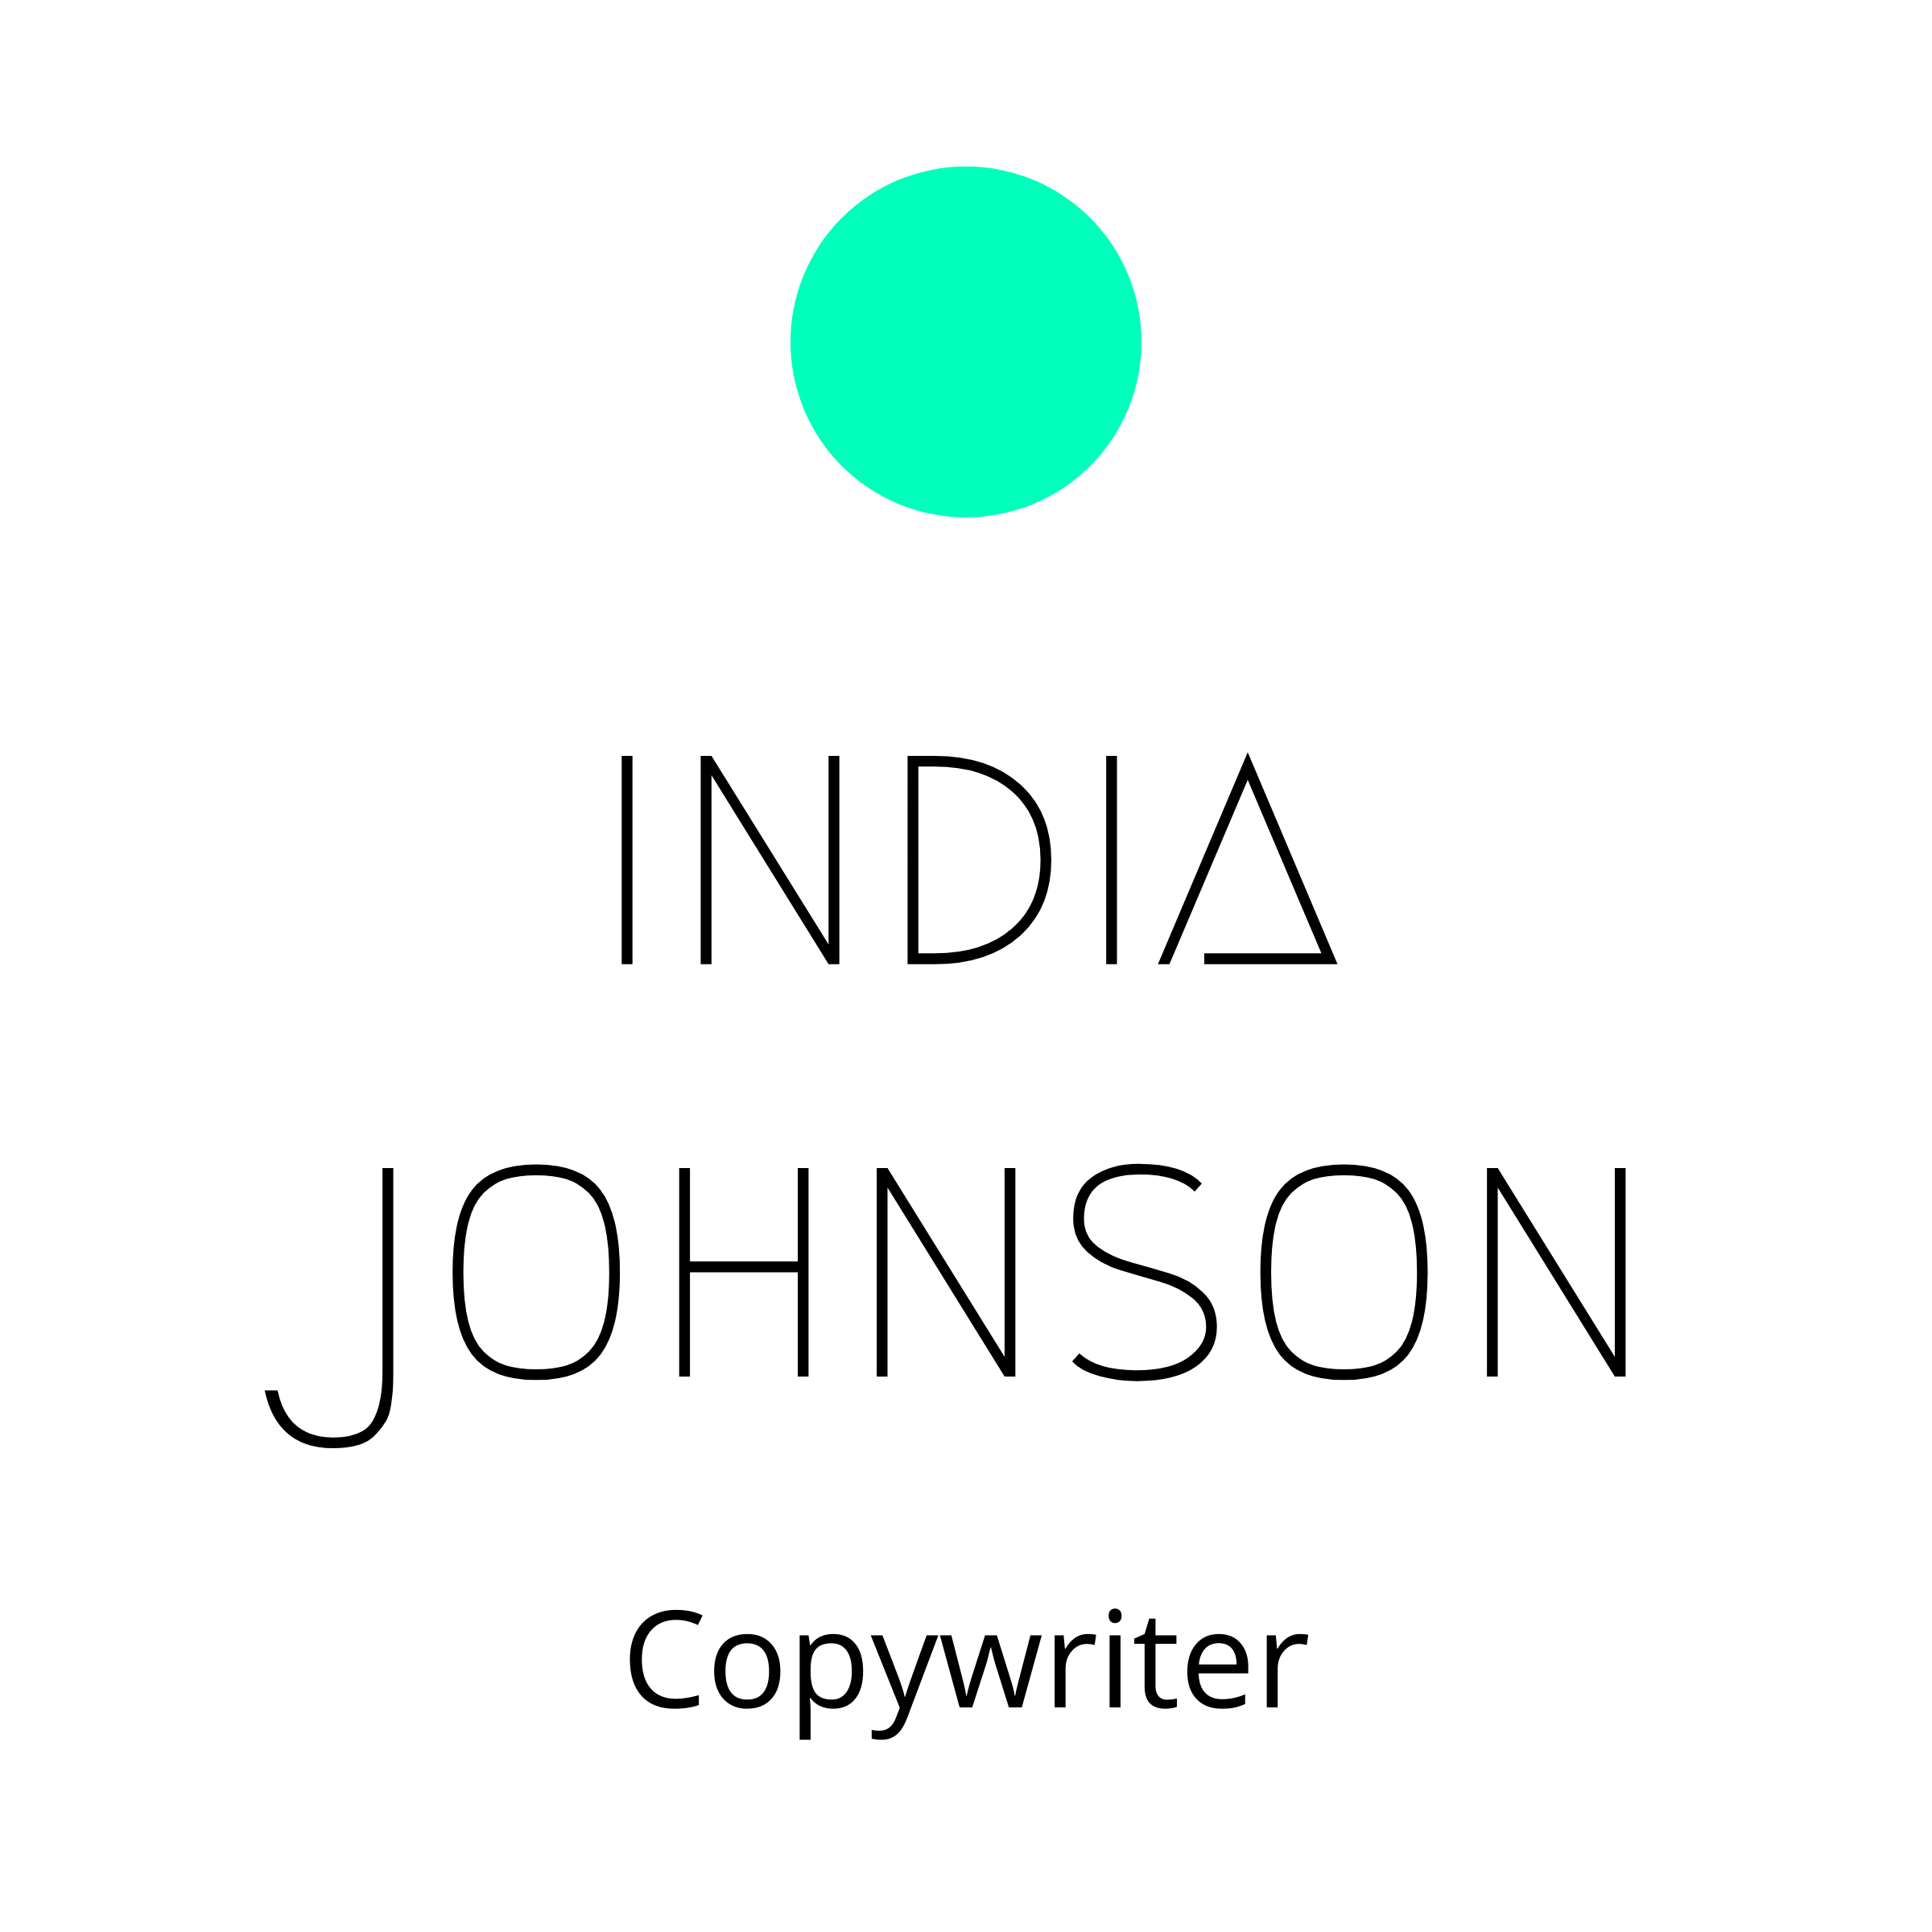 India Johnson London freelance copywriter